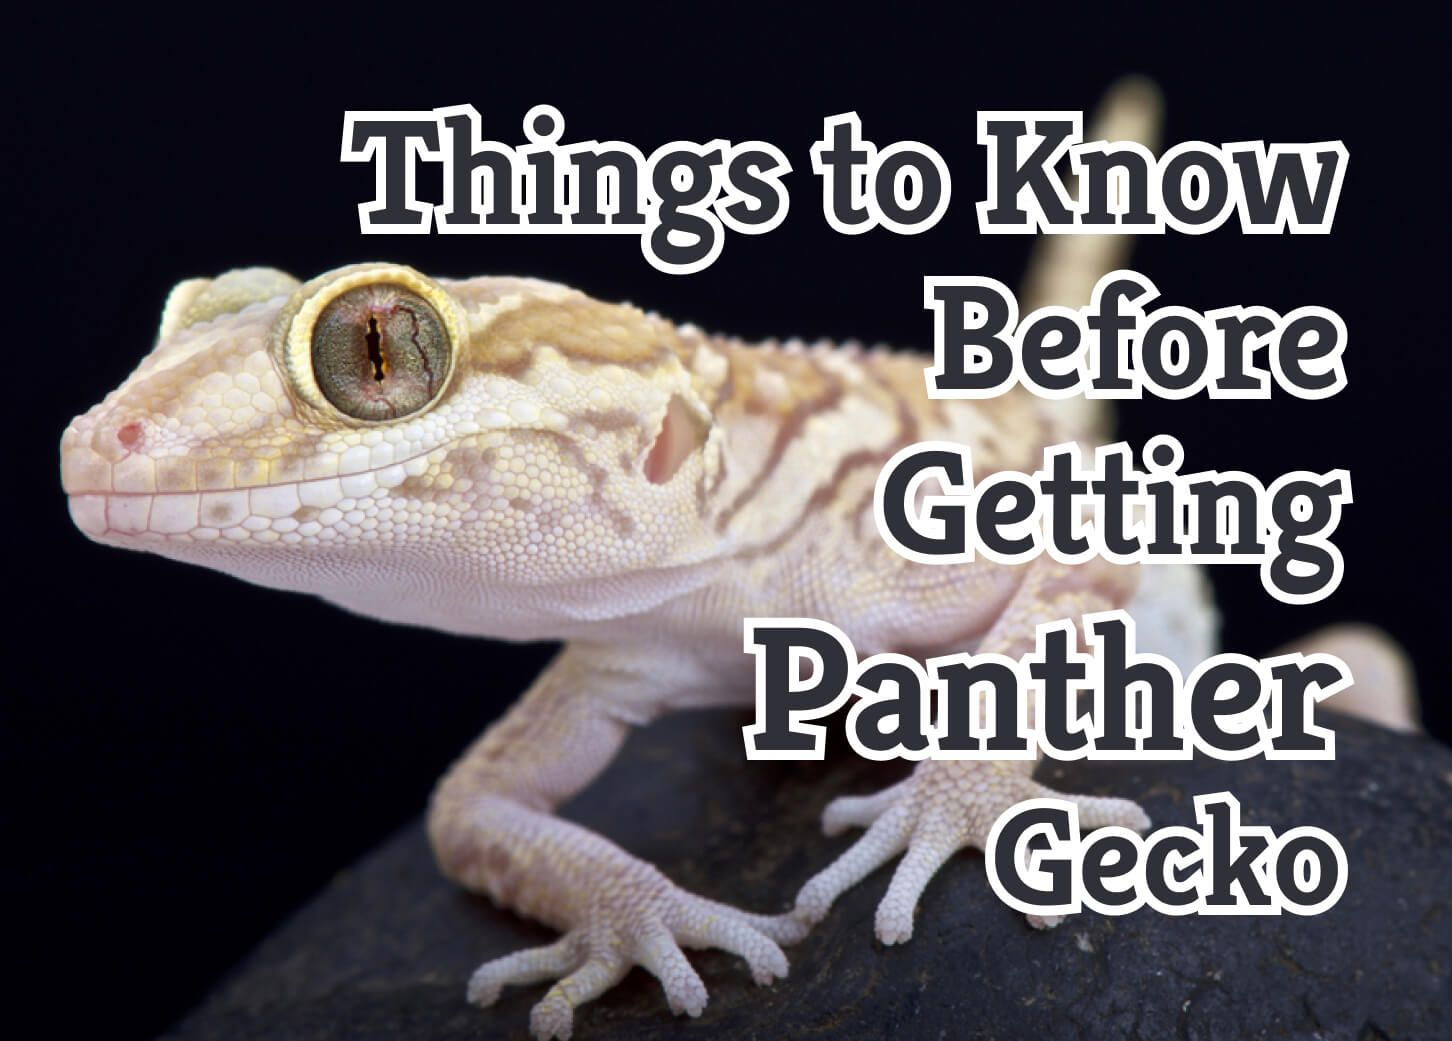 Important Things to know before getting Panther Gecko